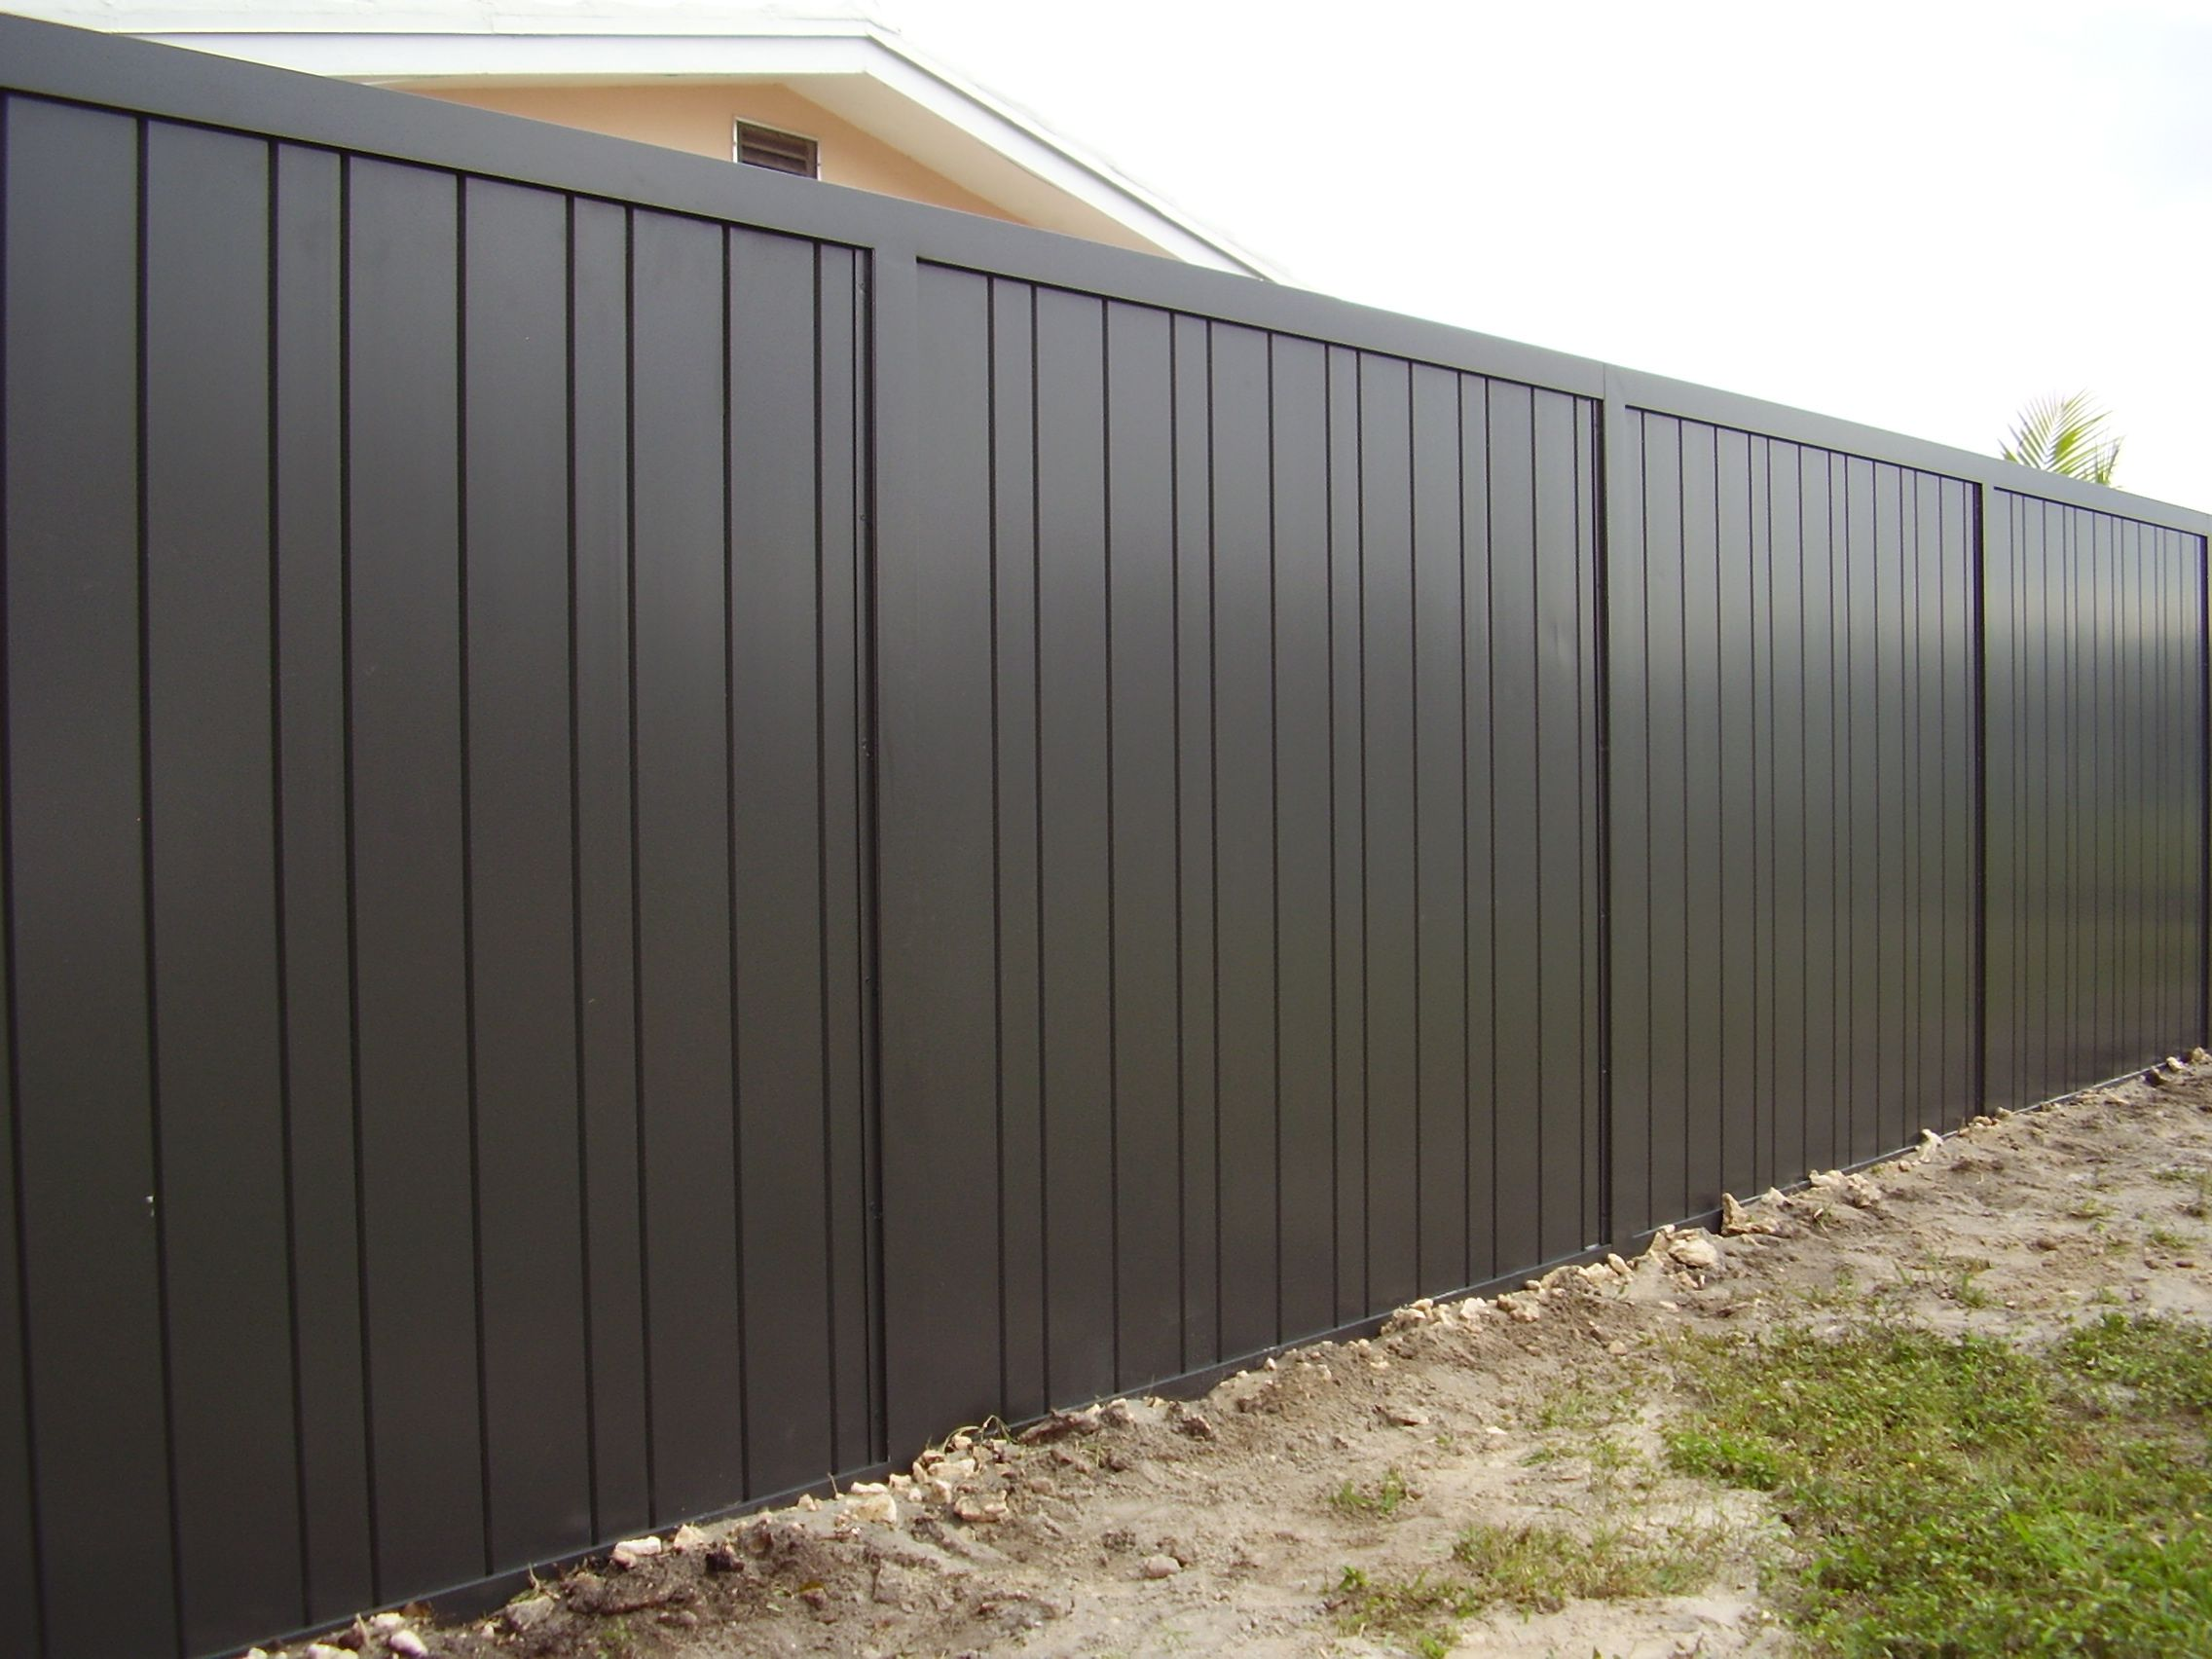 aluminum privacy fencing - Google Search | Homey Ideas ...